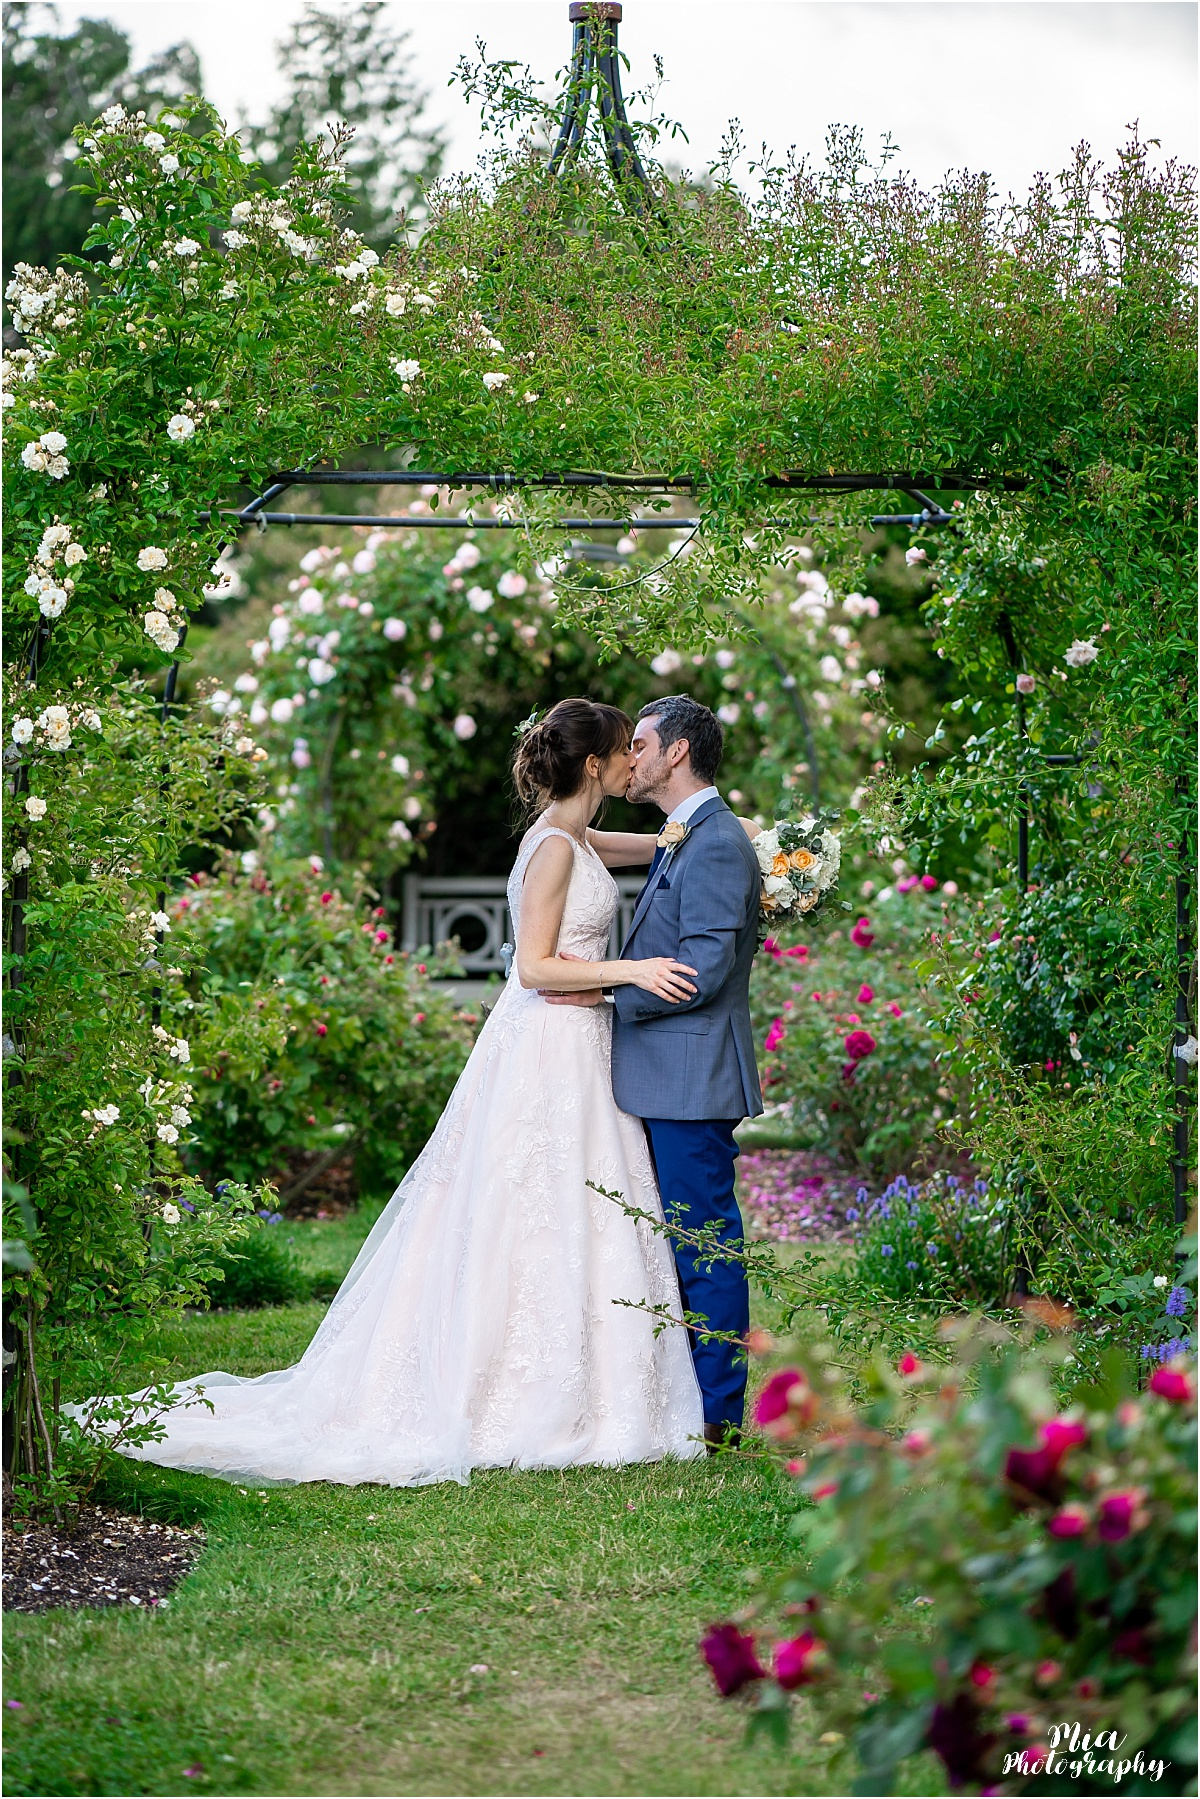 Bride and groom in the roses